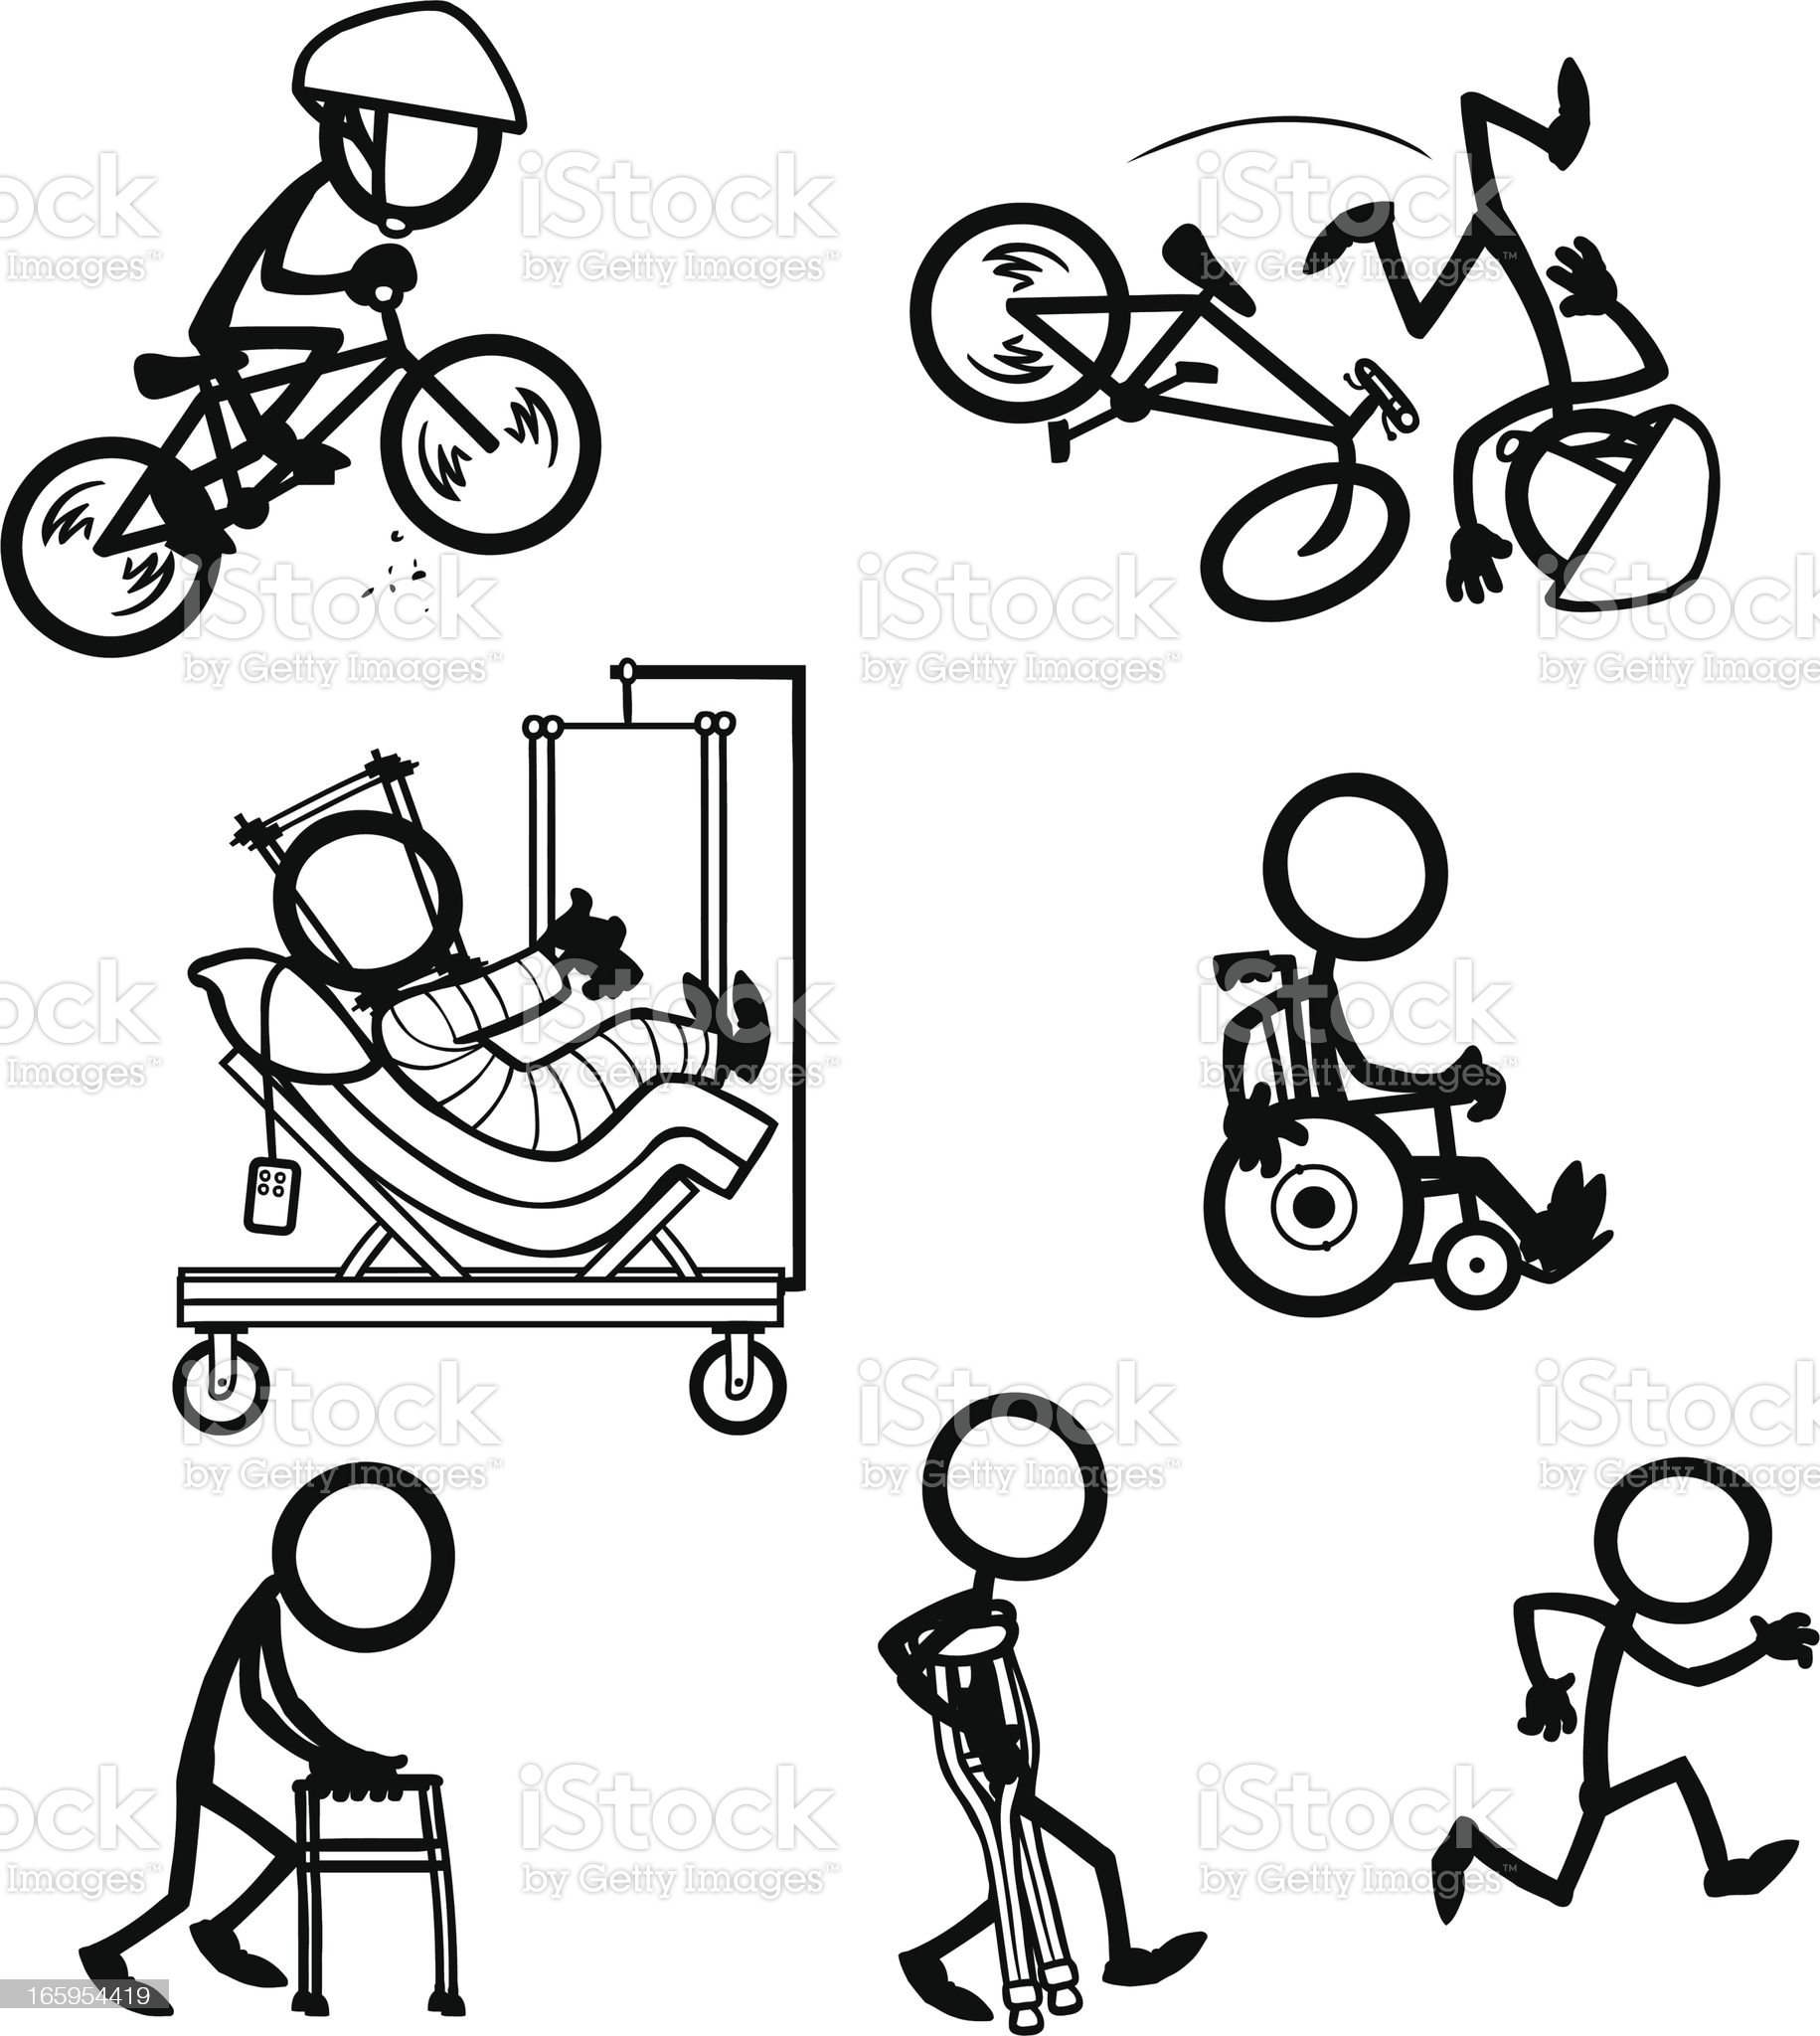 Stick Figure People Bike Accident Recovery royalty-free stock vector art